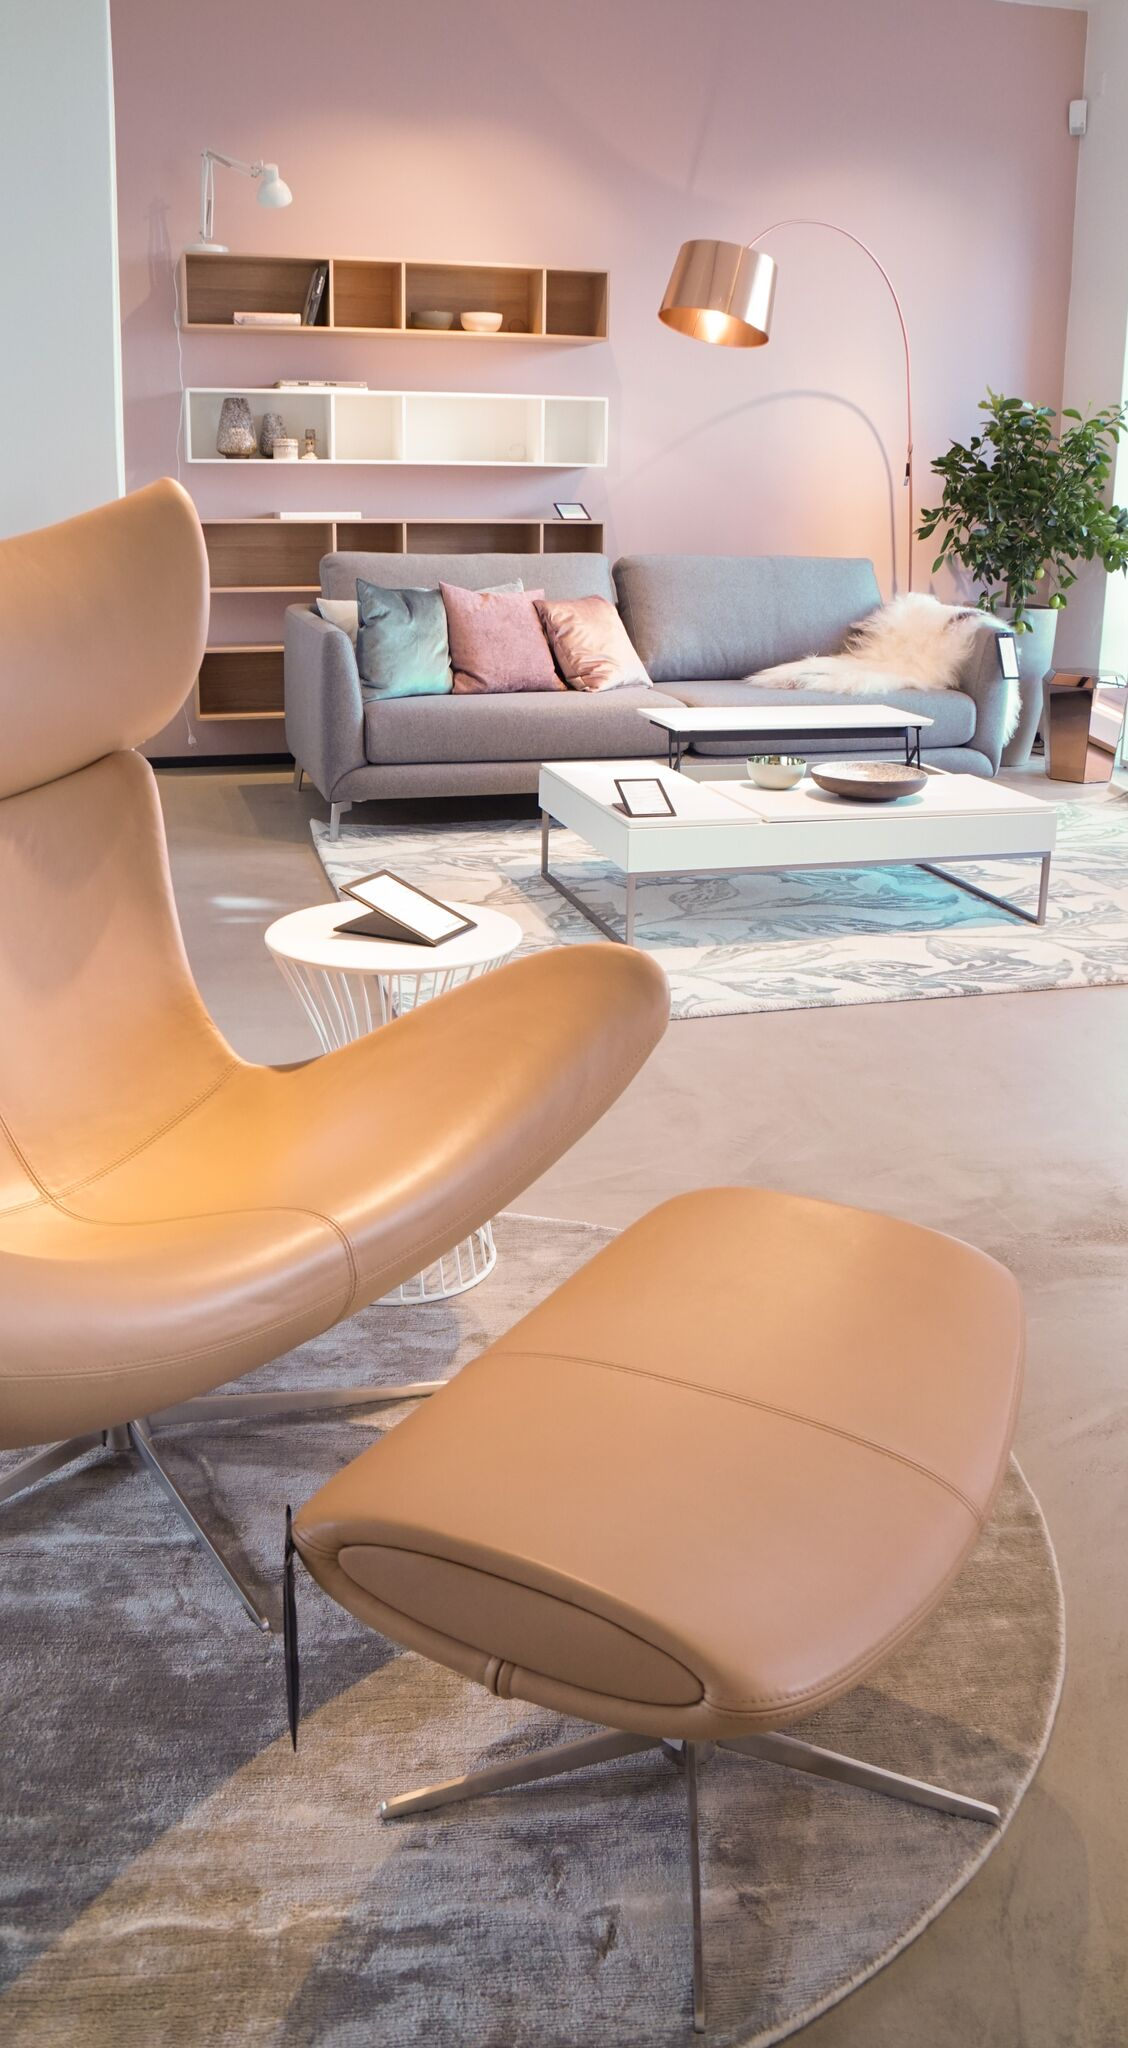 boconcept-a%cc%8abning-21-of-39_preview